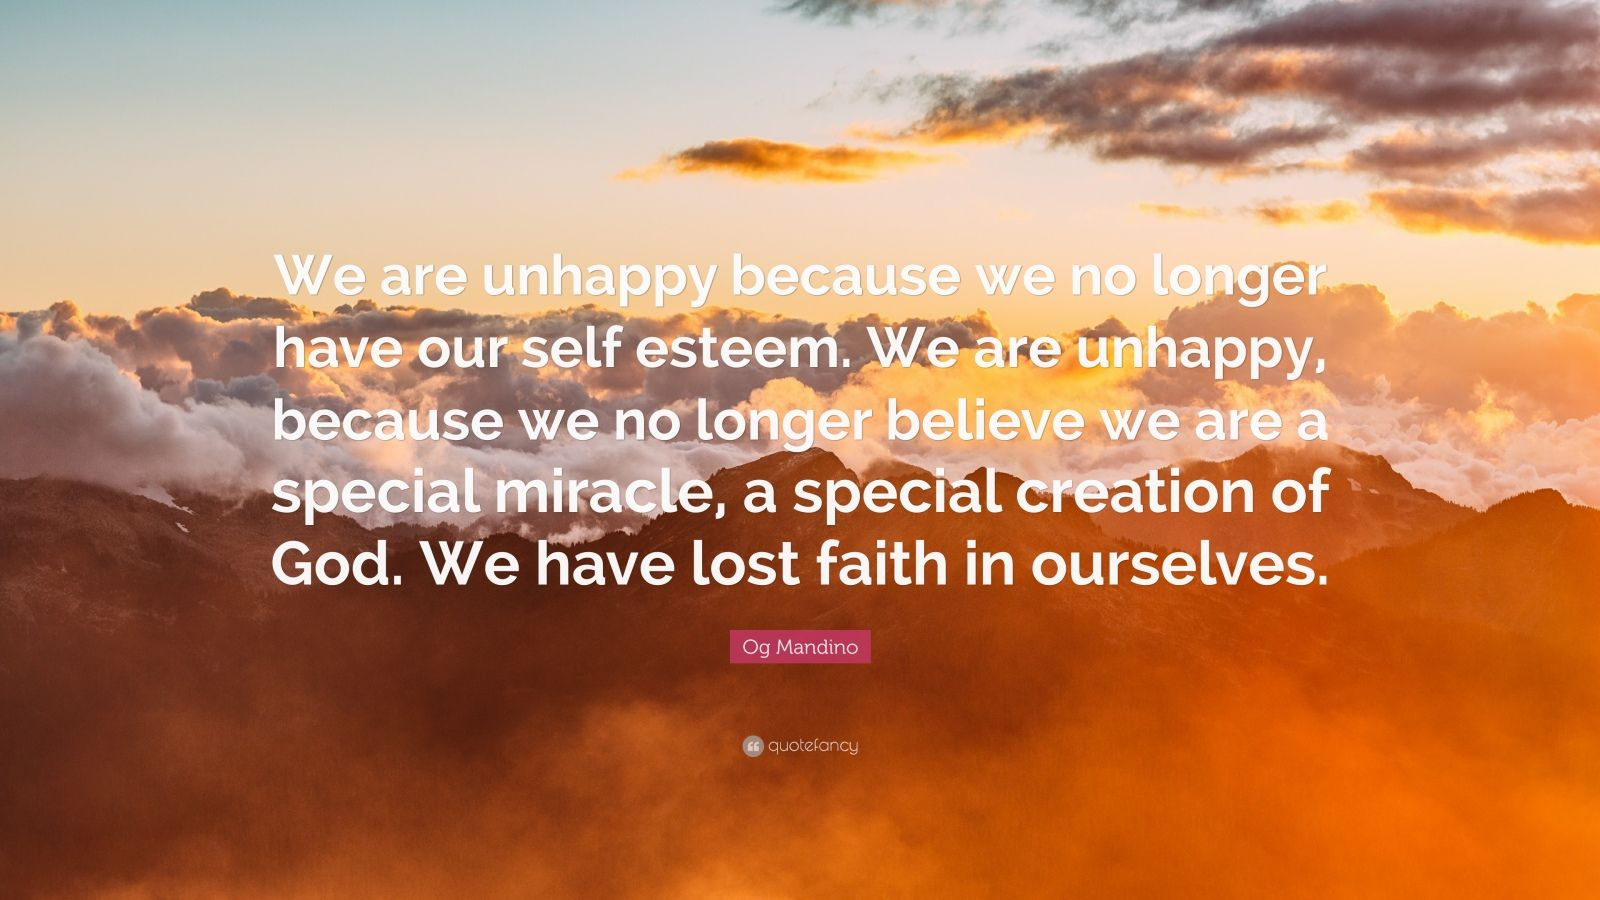 """Og Mandino Quote: """"We are unhappy because we no longer have our self esteem. We are unhappy, because we no longer believe we are a special miracle, a special creation of God. We have lost faith in ourselves."""""""